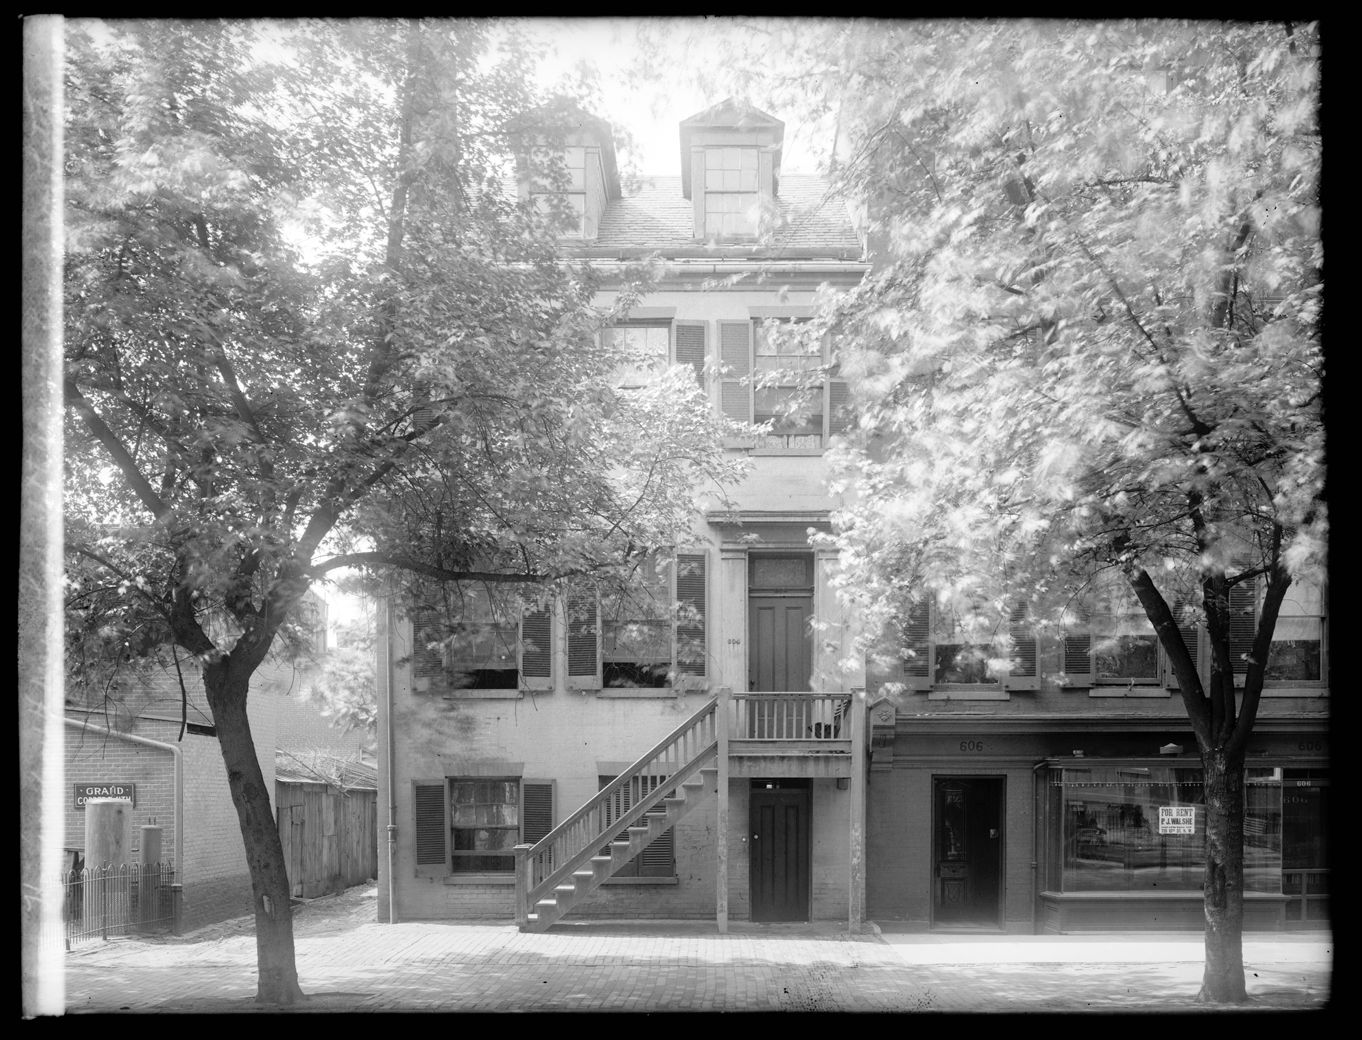 The Surratt House between 1910 and 1926 where it's believed the plot to assassinate Lincoln was hatched. (Courtesy Library of Congress)